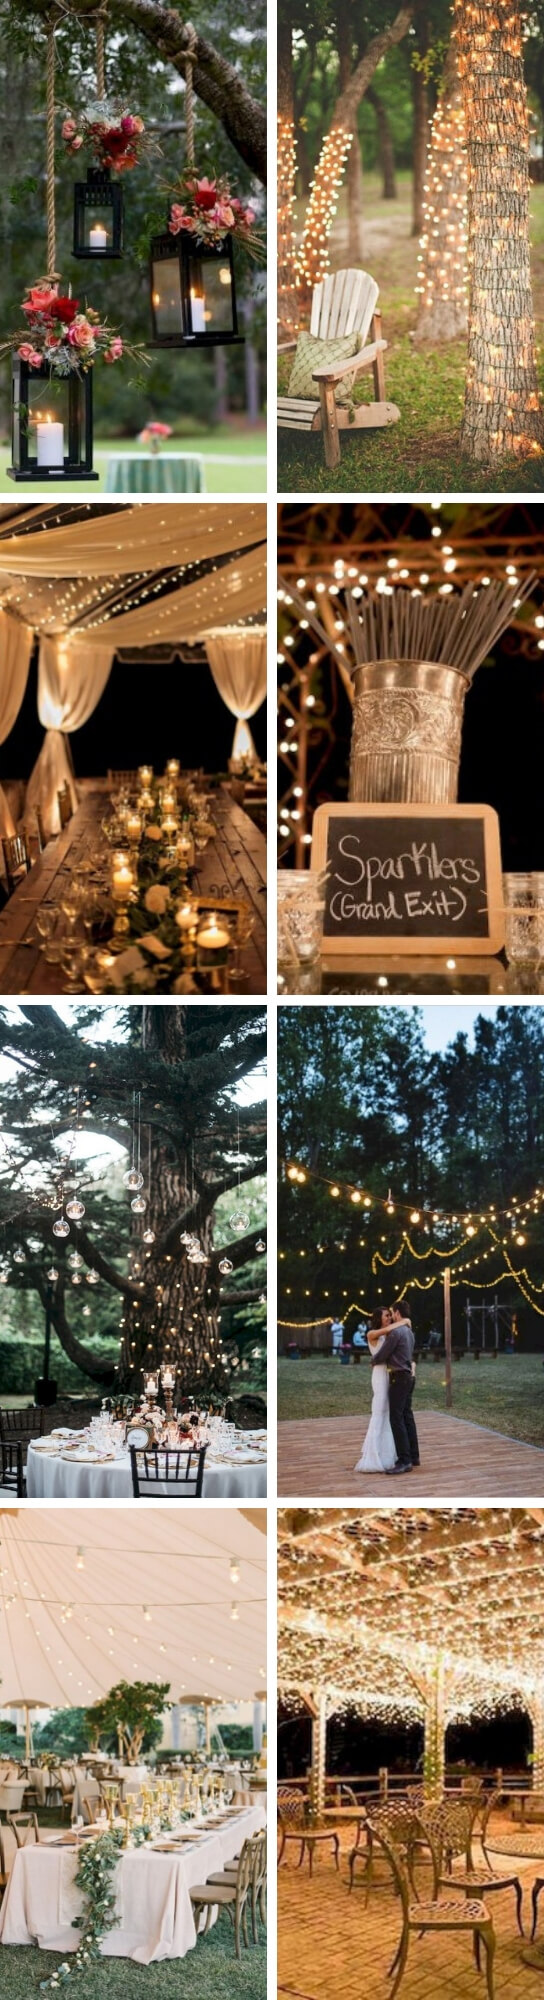 Backyard Wedding Lighting | Creative & Rustic Backyard Wedding Ideas For Summer & Fall